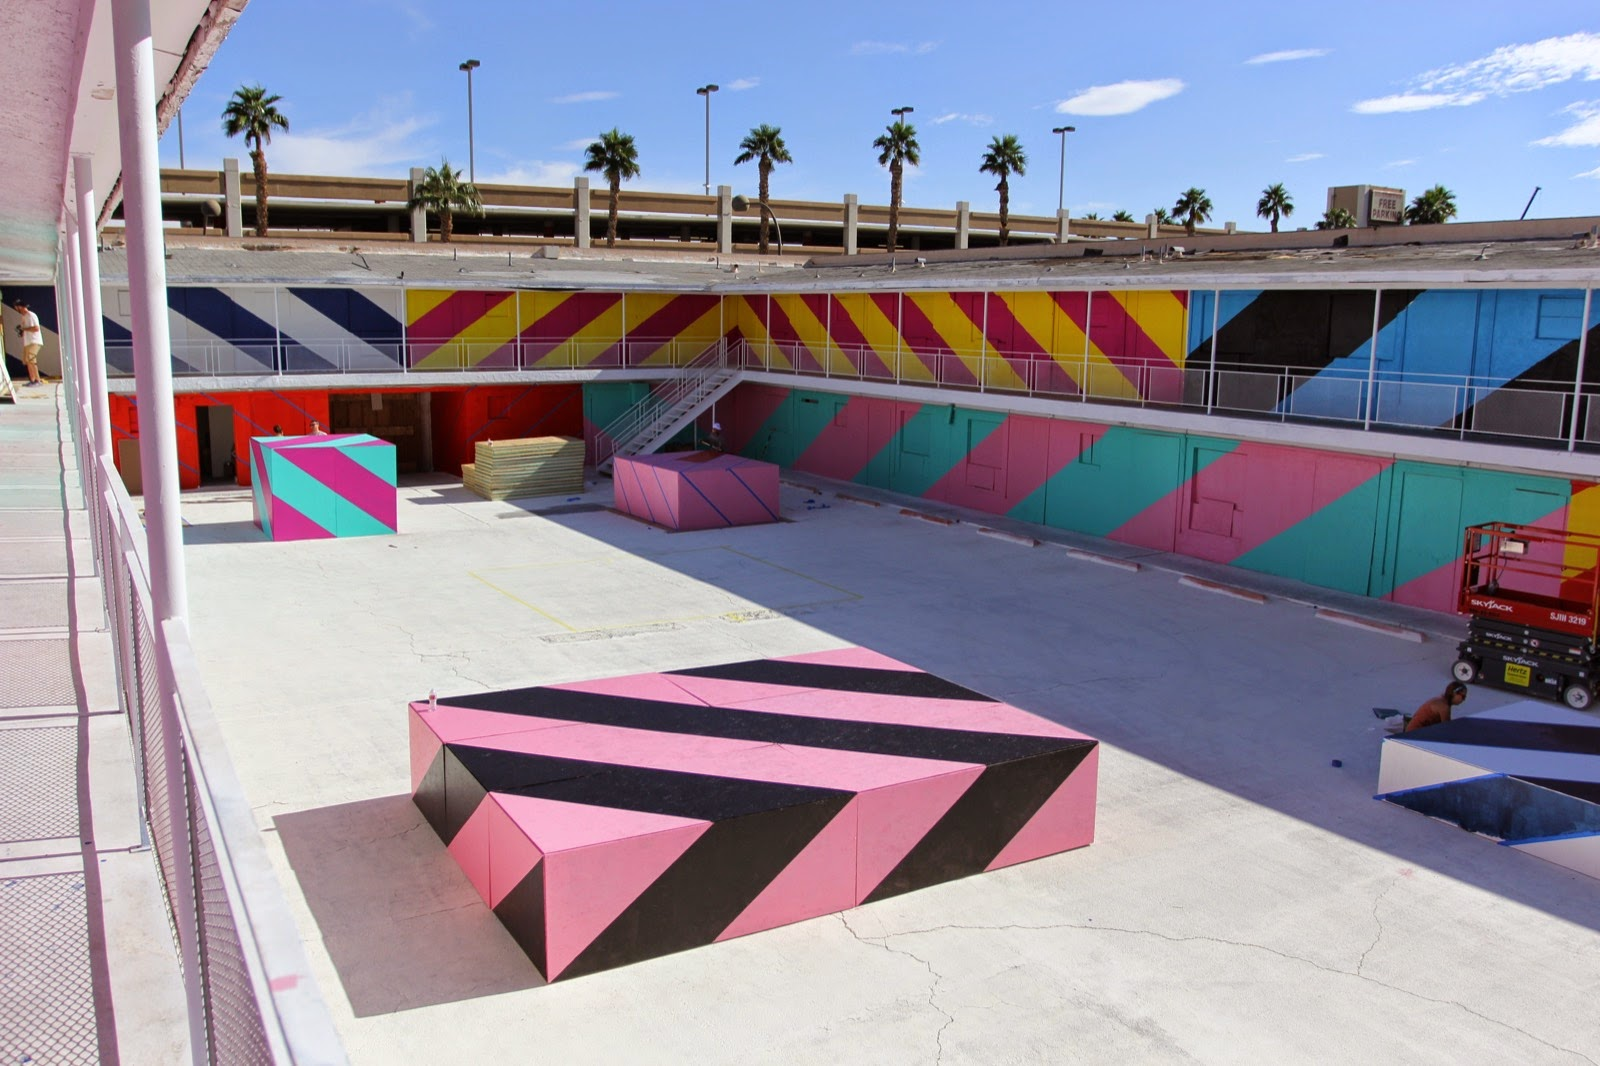 Maser is currently in Las Vegas, Nevada where he spent the last two days working on this new installation with JustKids for the Life Is Beautiful Festival.